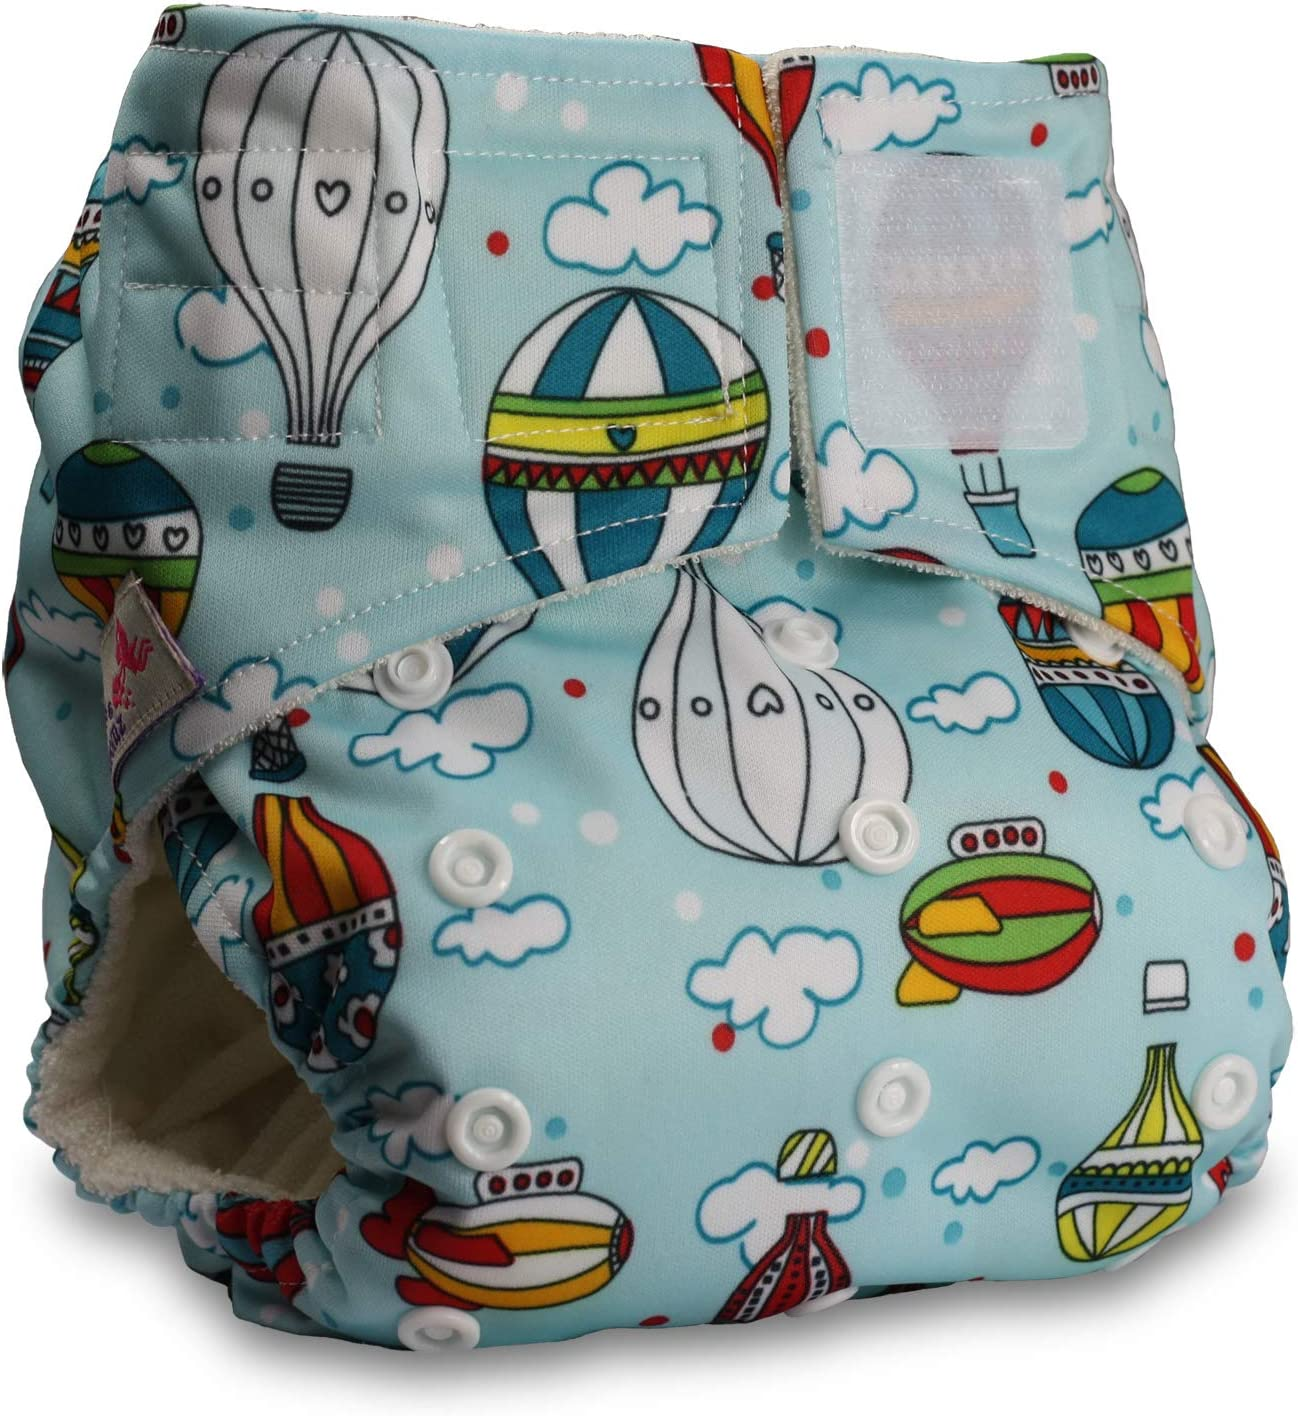 Littles /& Bloomz Pattern 57 Baby Cloth Washable Reusable Nappy Pocket Diaper Bamboo Fastener: Hook-Loop with 1 Bamboo Charcoal Insert